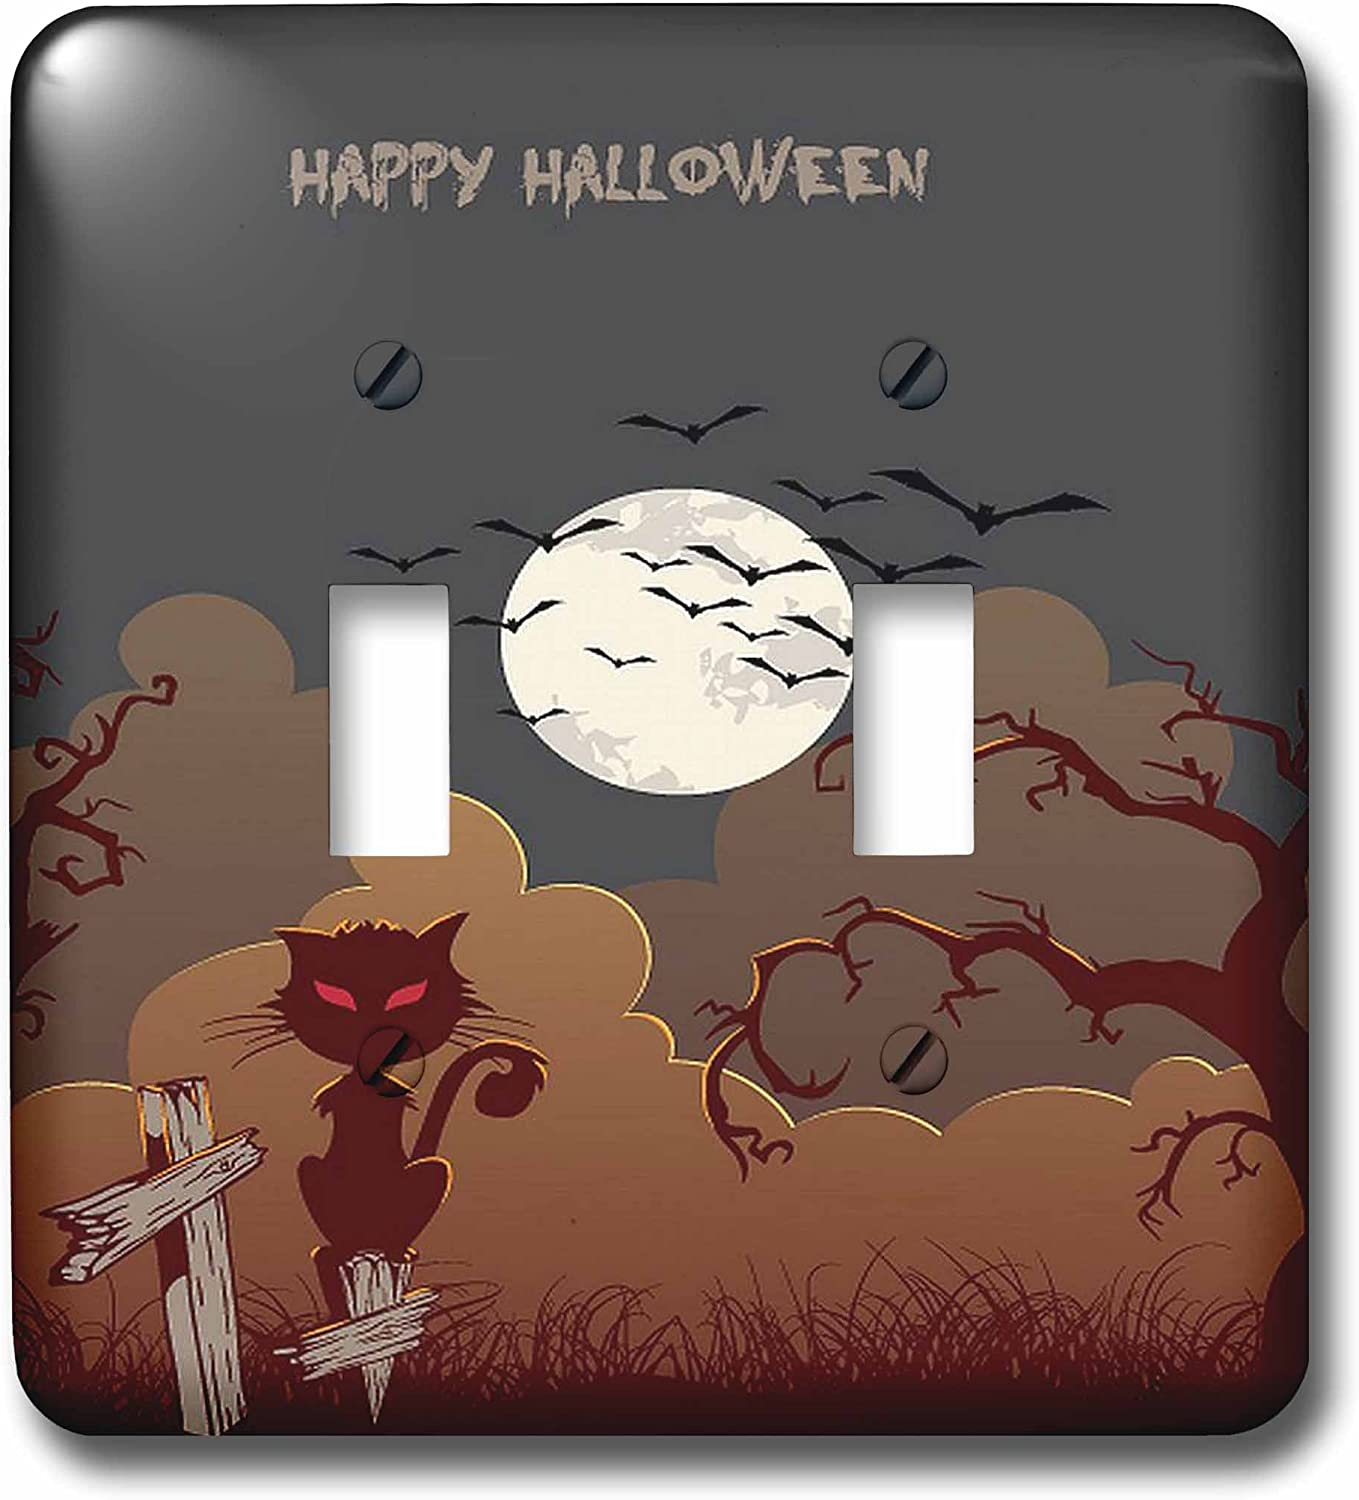 3drose Lsp 65468 2 Halloween Night With Cat Under A Moon Double Toggle Switch Switch Plates